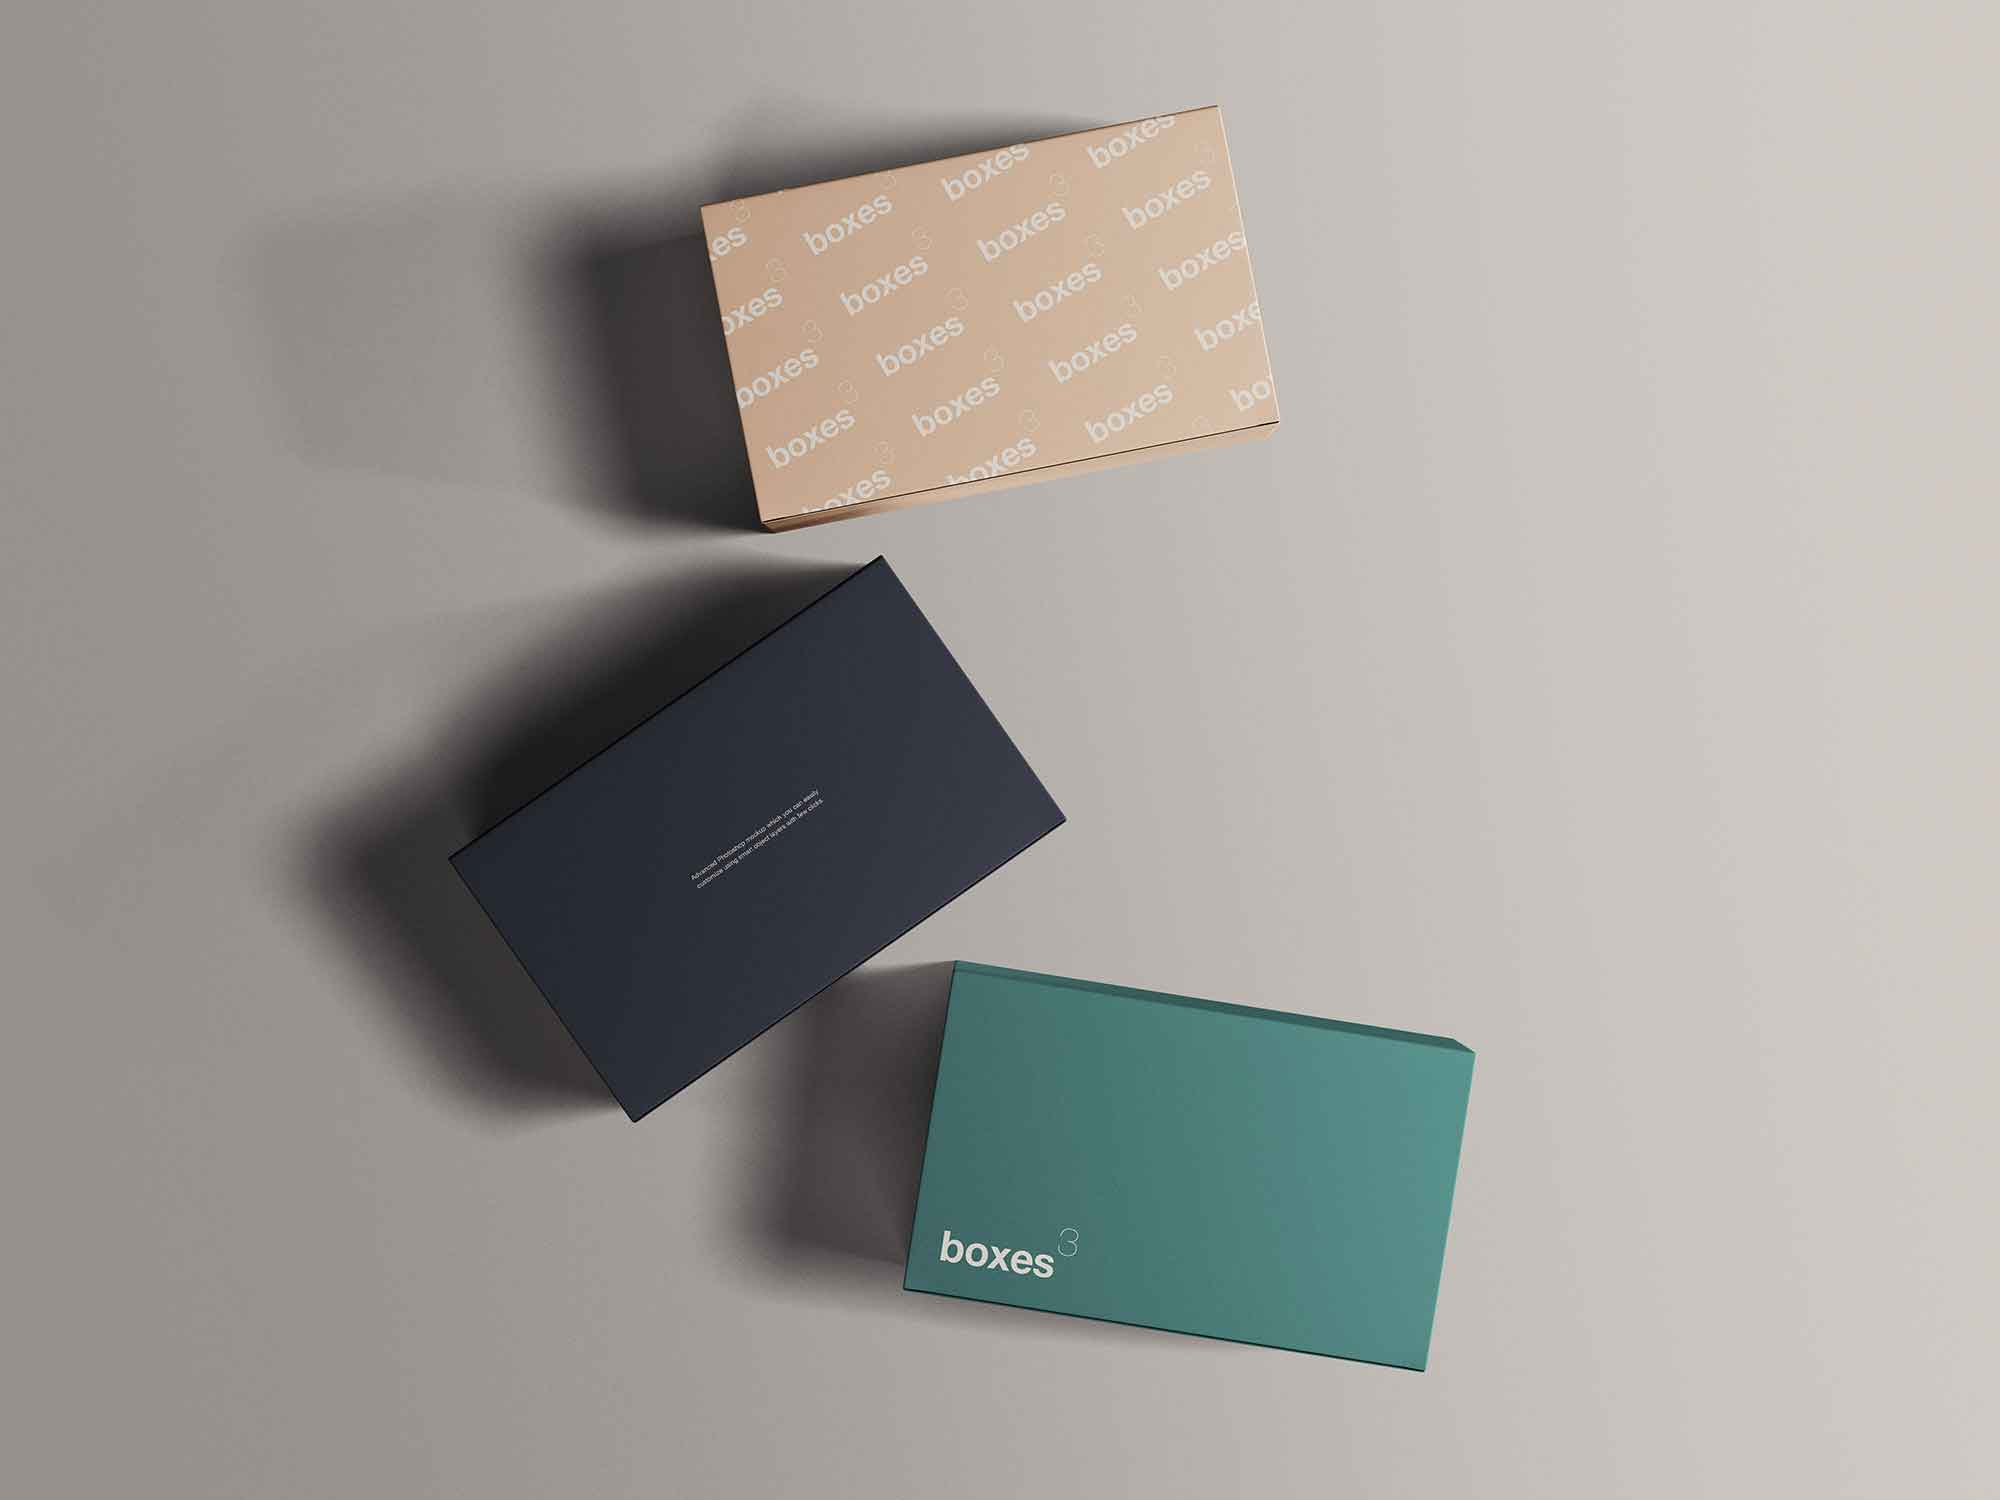 Top View Box Packages Mockup